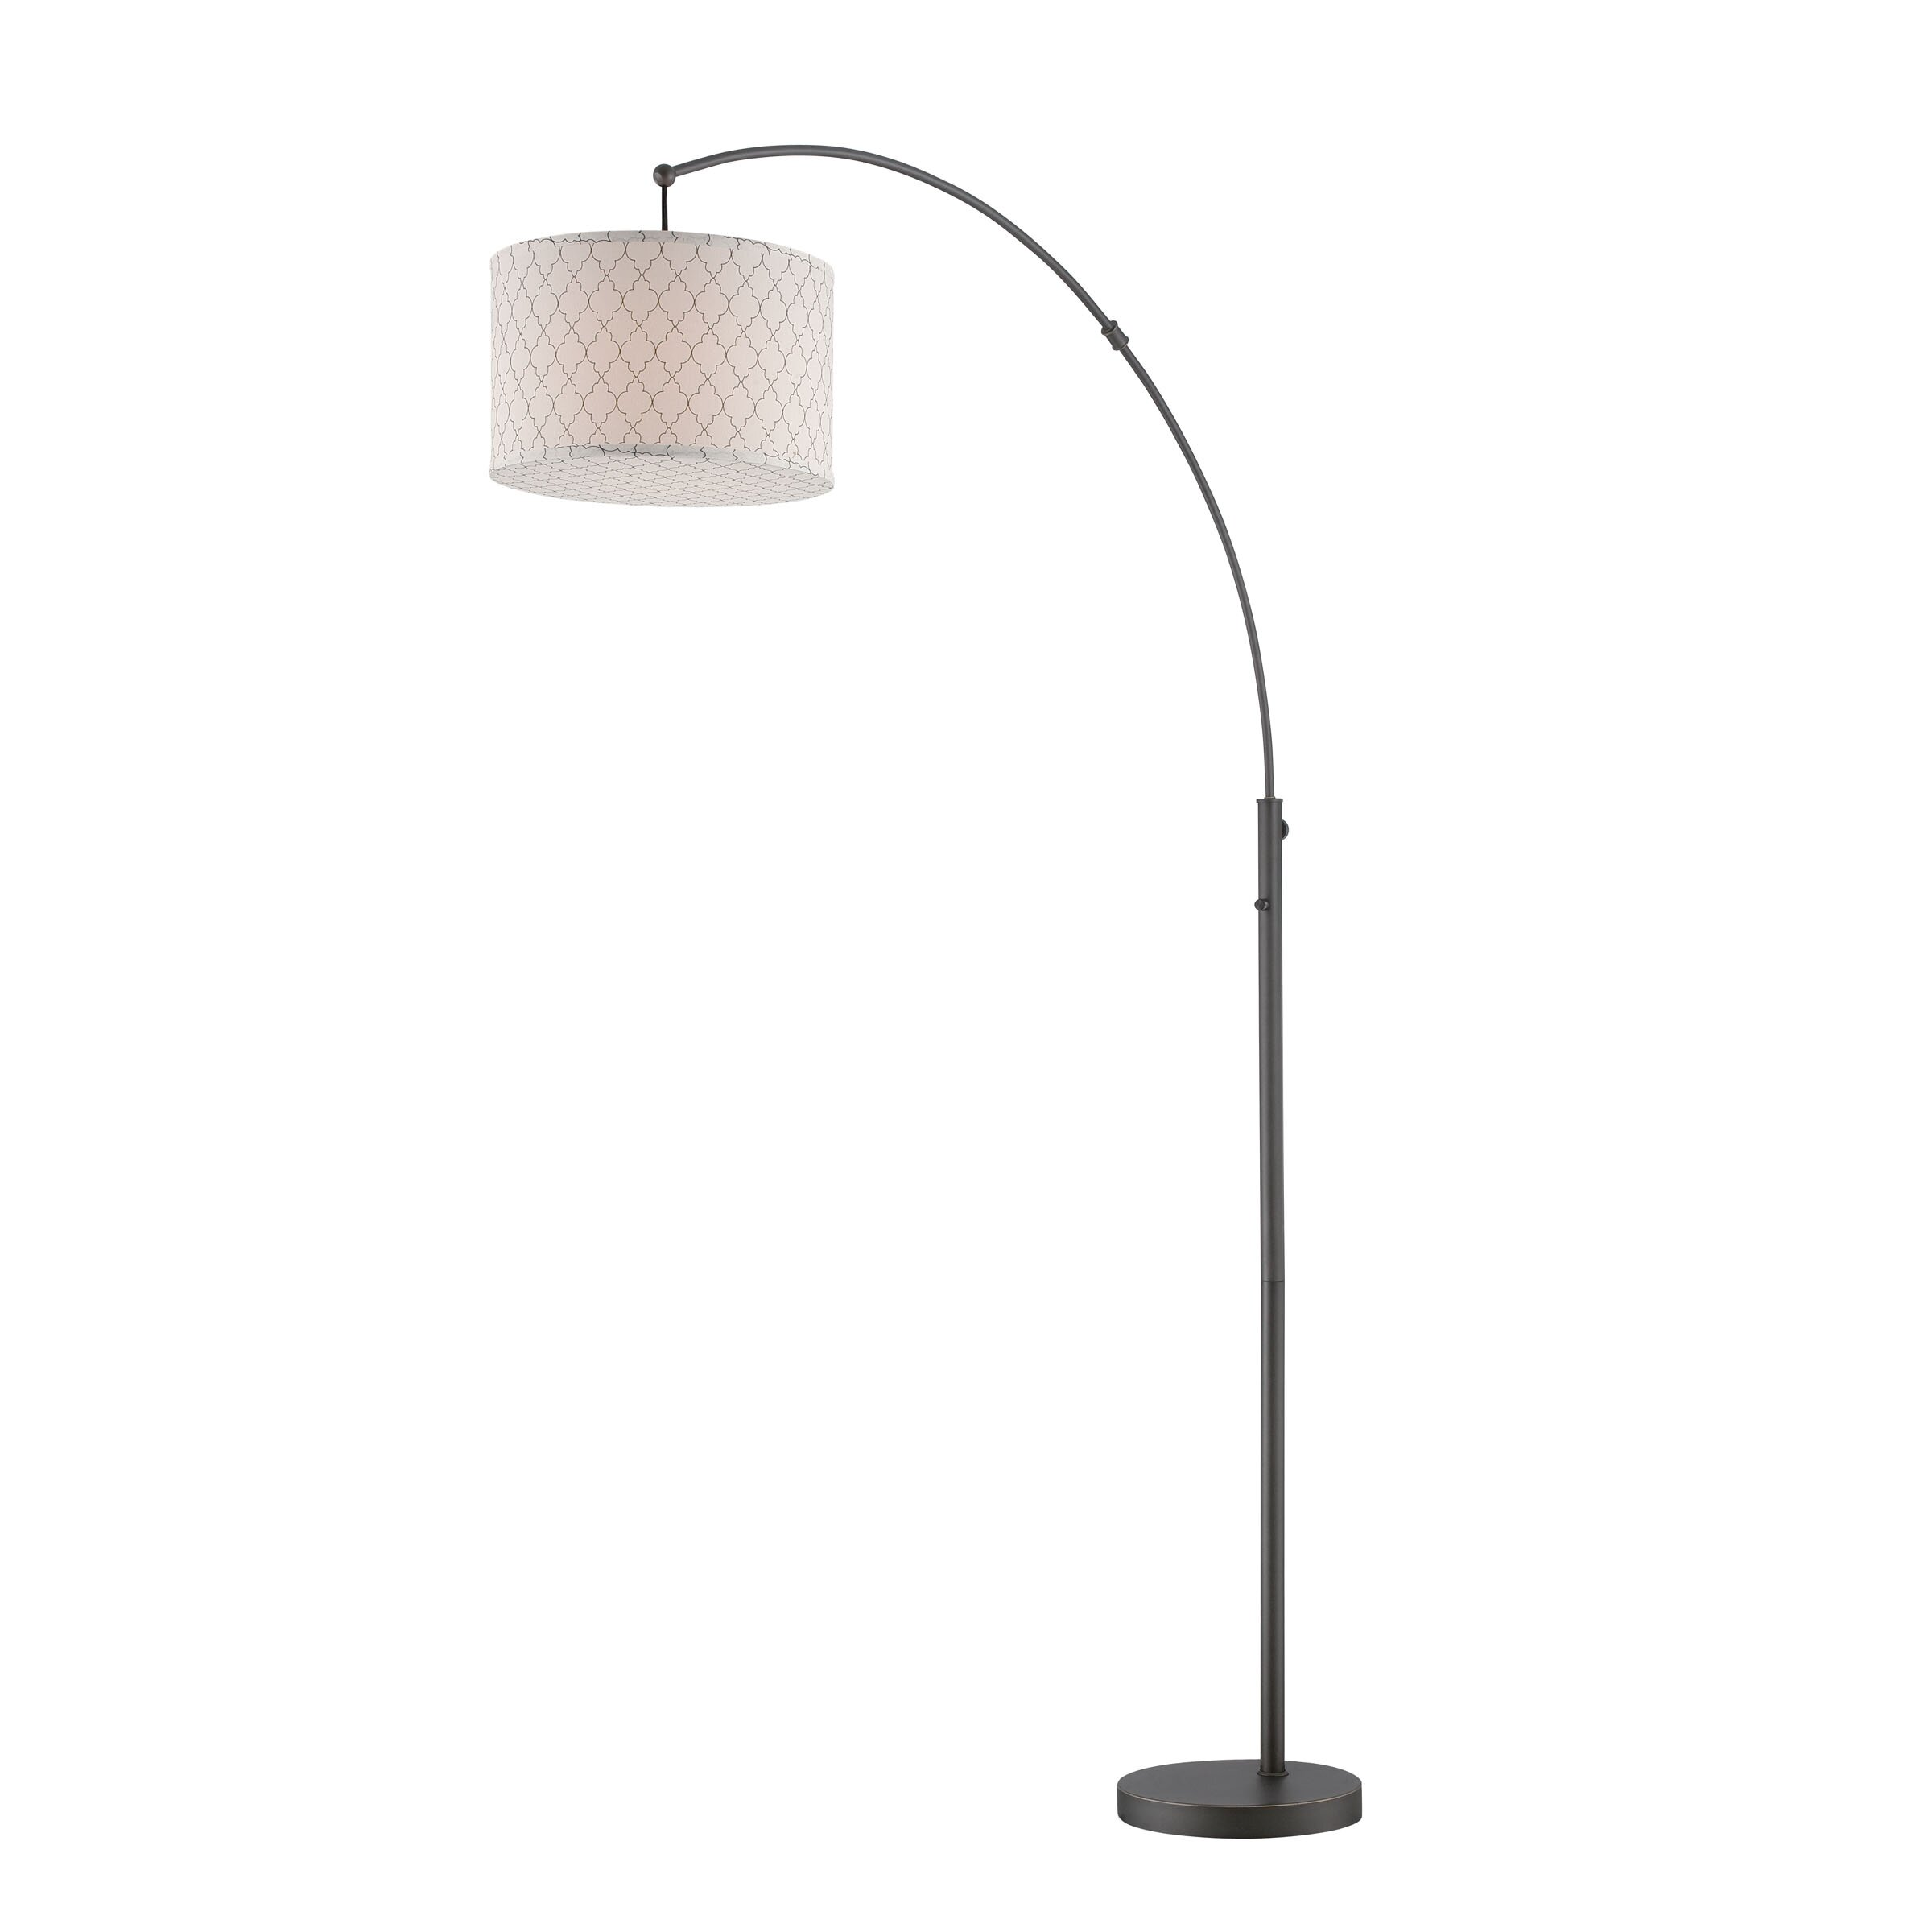 Lite source vasanti 77 5 arched floor lamp reviews for Arch floor lamps for living room